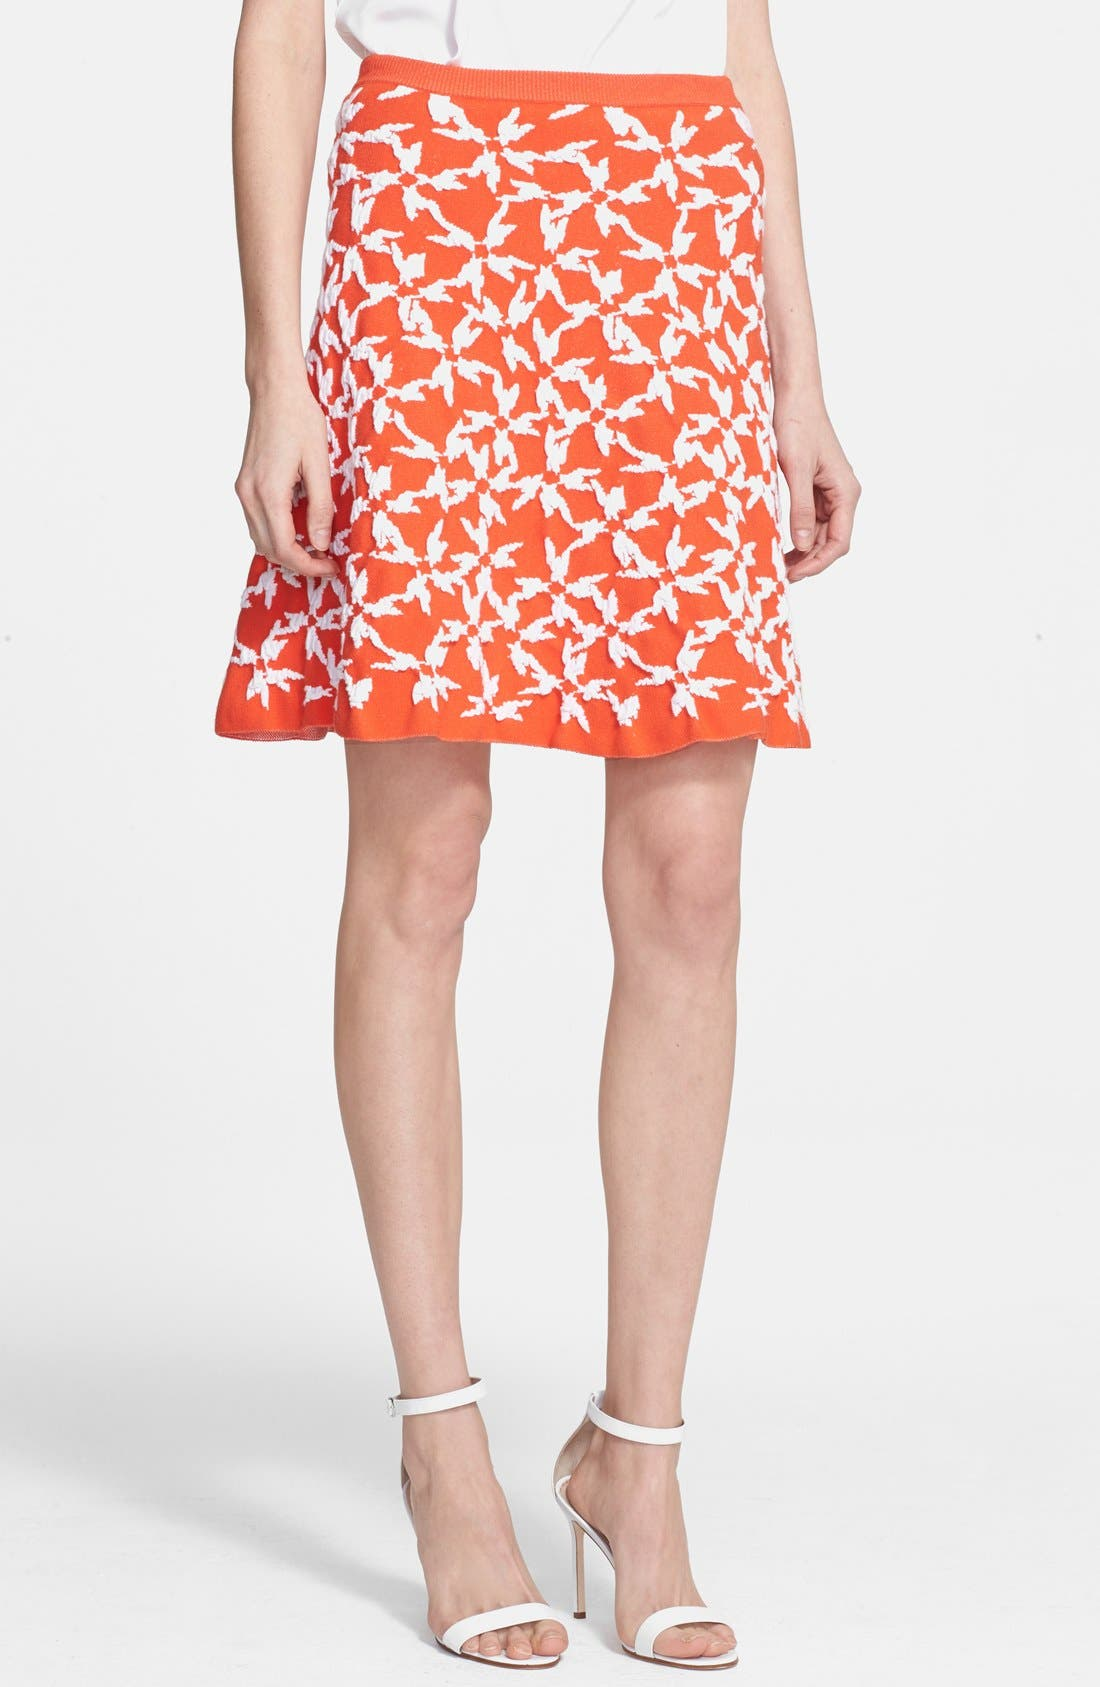 Alternate Image 1 Selected - Tanya Taylor 'Maia' Jacquard Knit Skirt